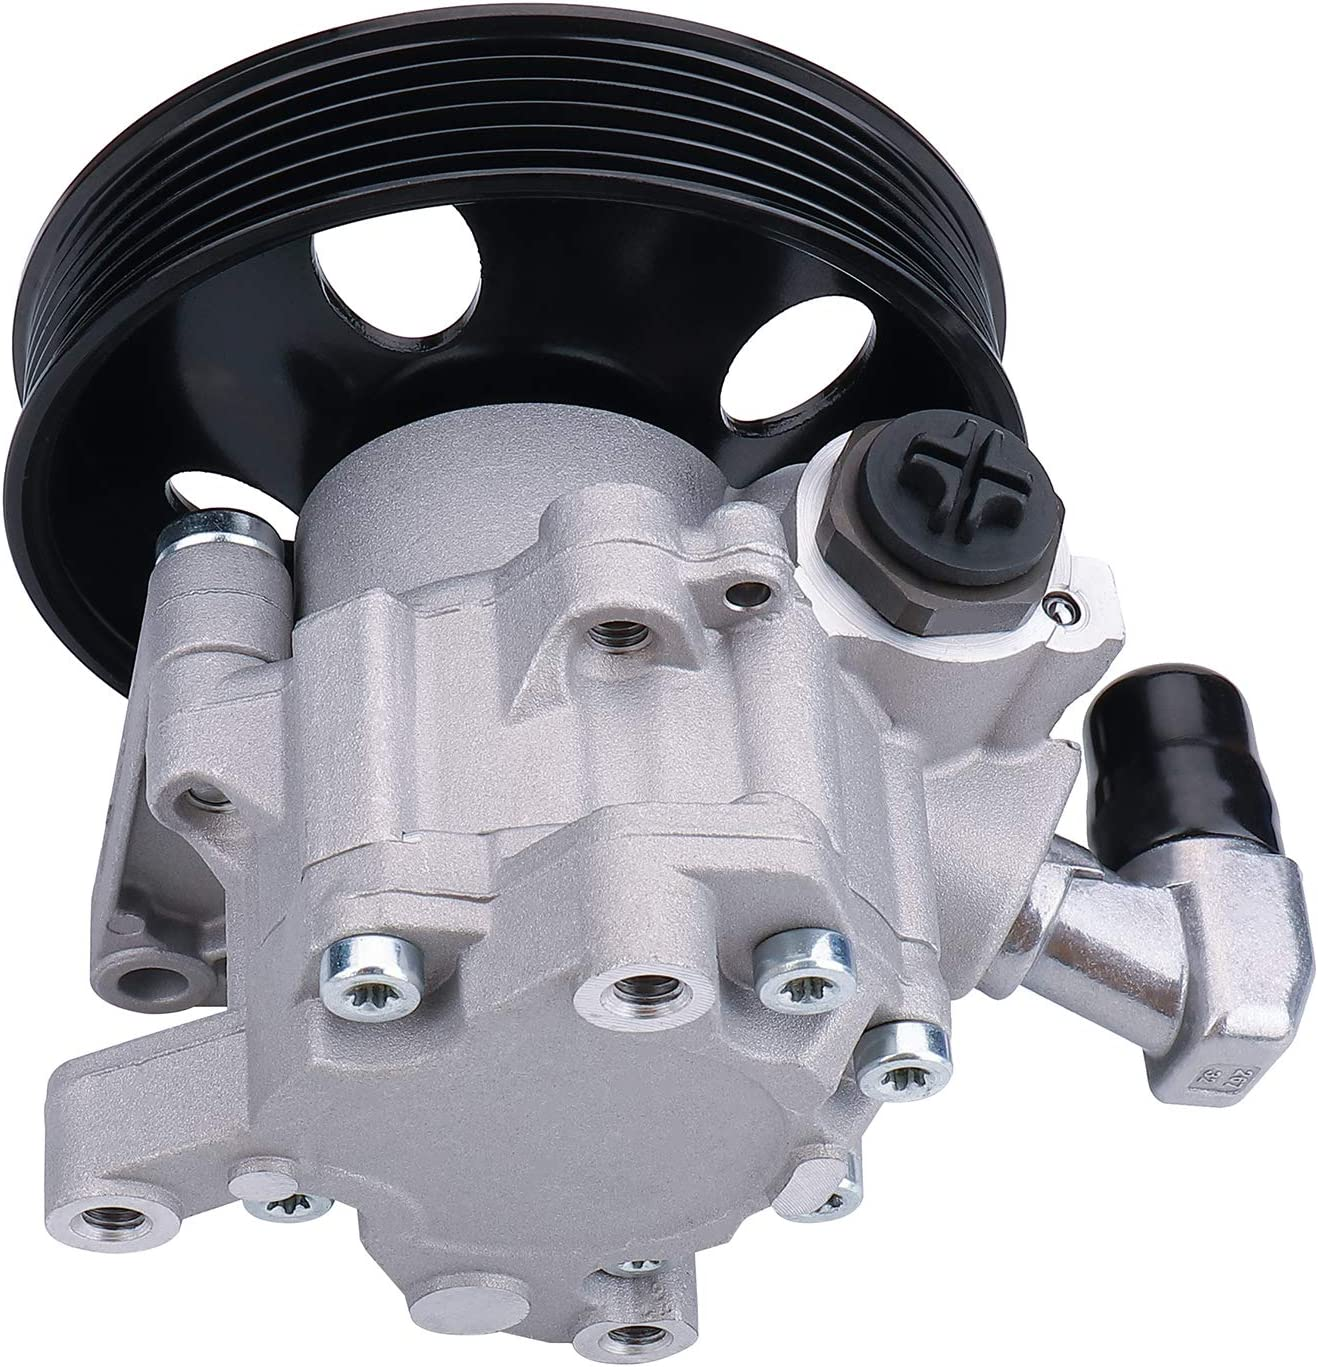 BRTEC 21-5294 Power Steering Pump for 2002 2000 1998 1999 20001 Limited Minneapolis Mall Special Price